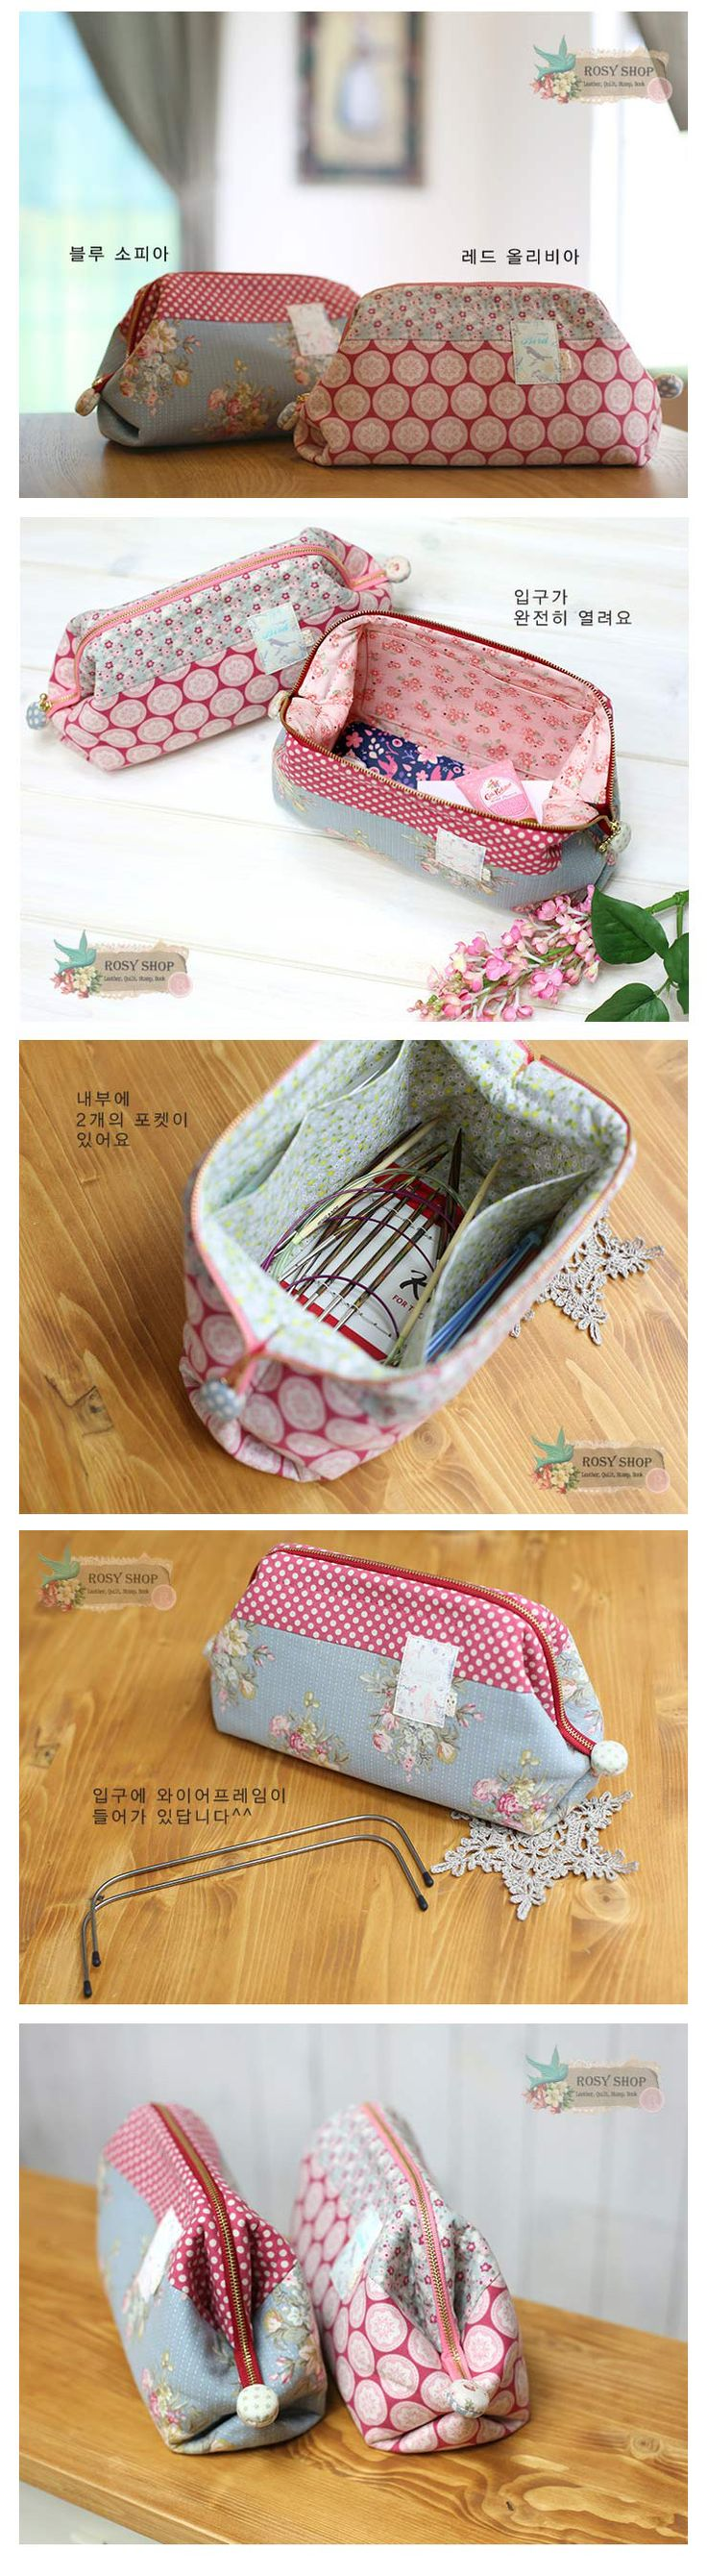 Tilda fabric wire frame pouch http://www.rosyquilt.co.kr/shop/shopdetail.html?branduid=252665&xcode=002&mcode=004&scode=&type=X&search=&sort=order